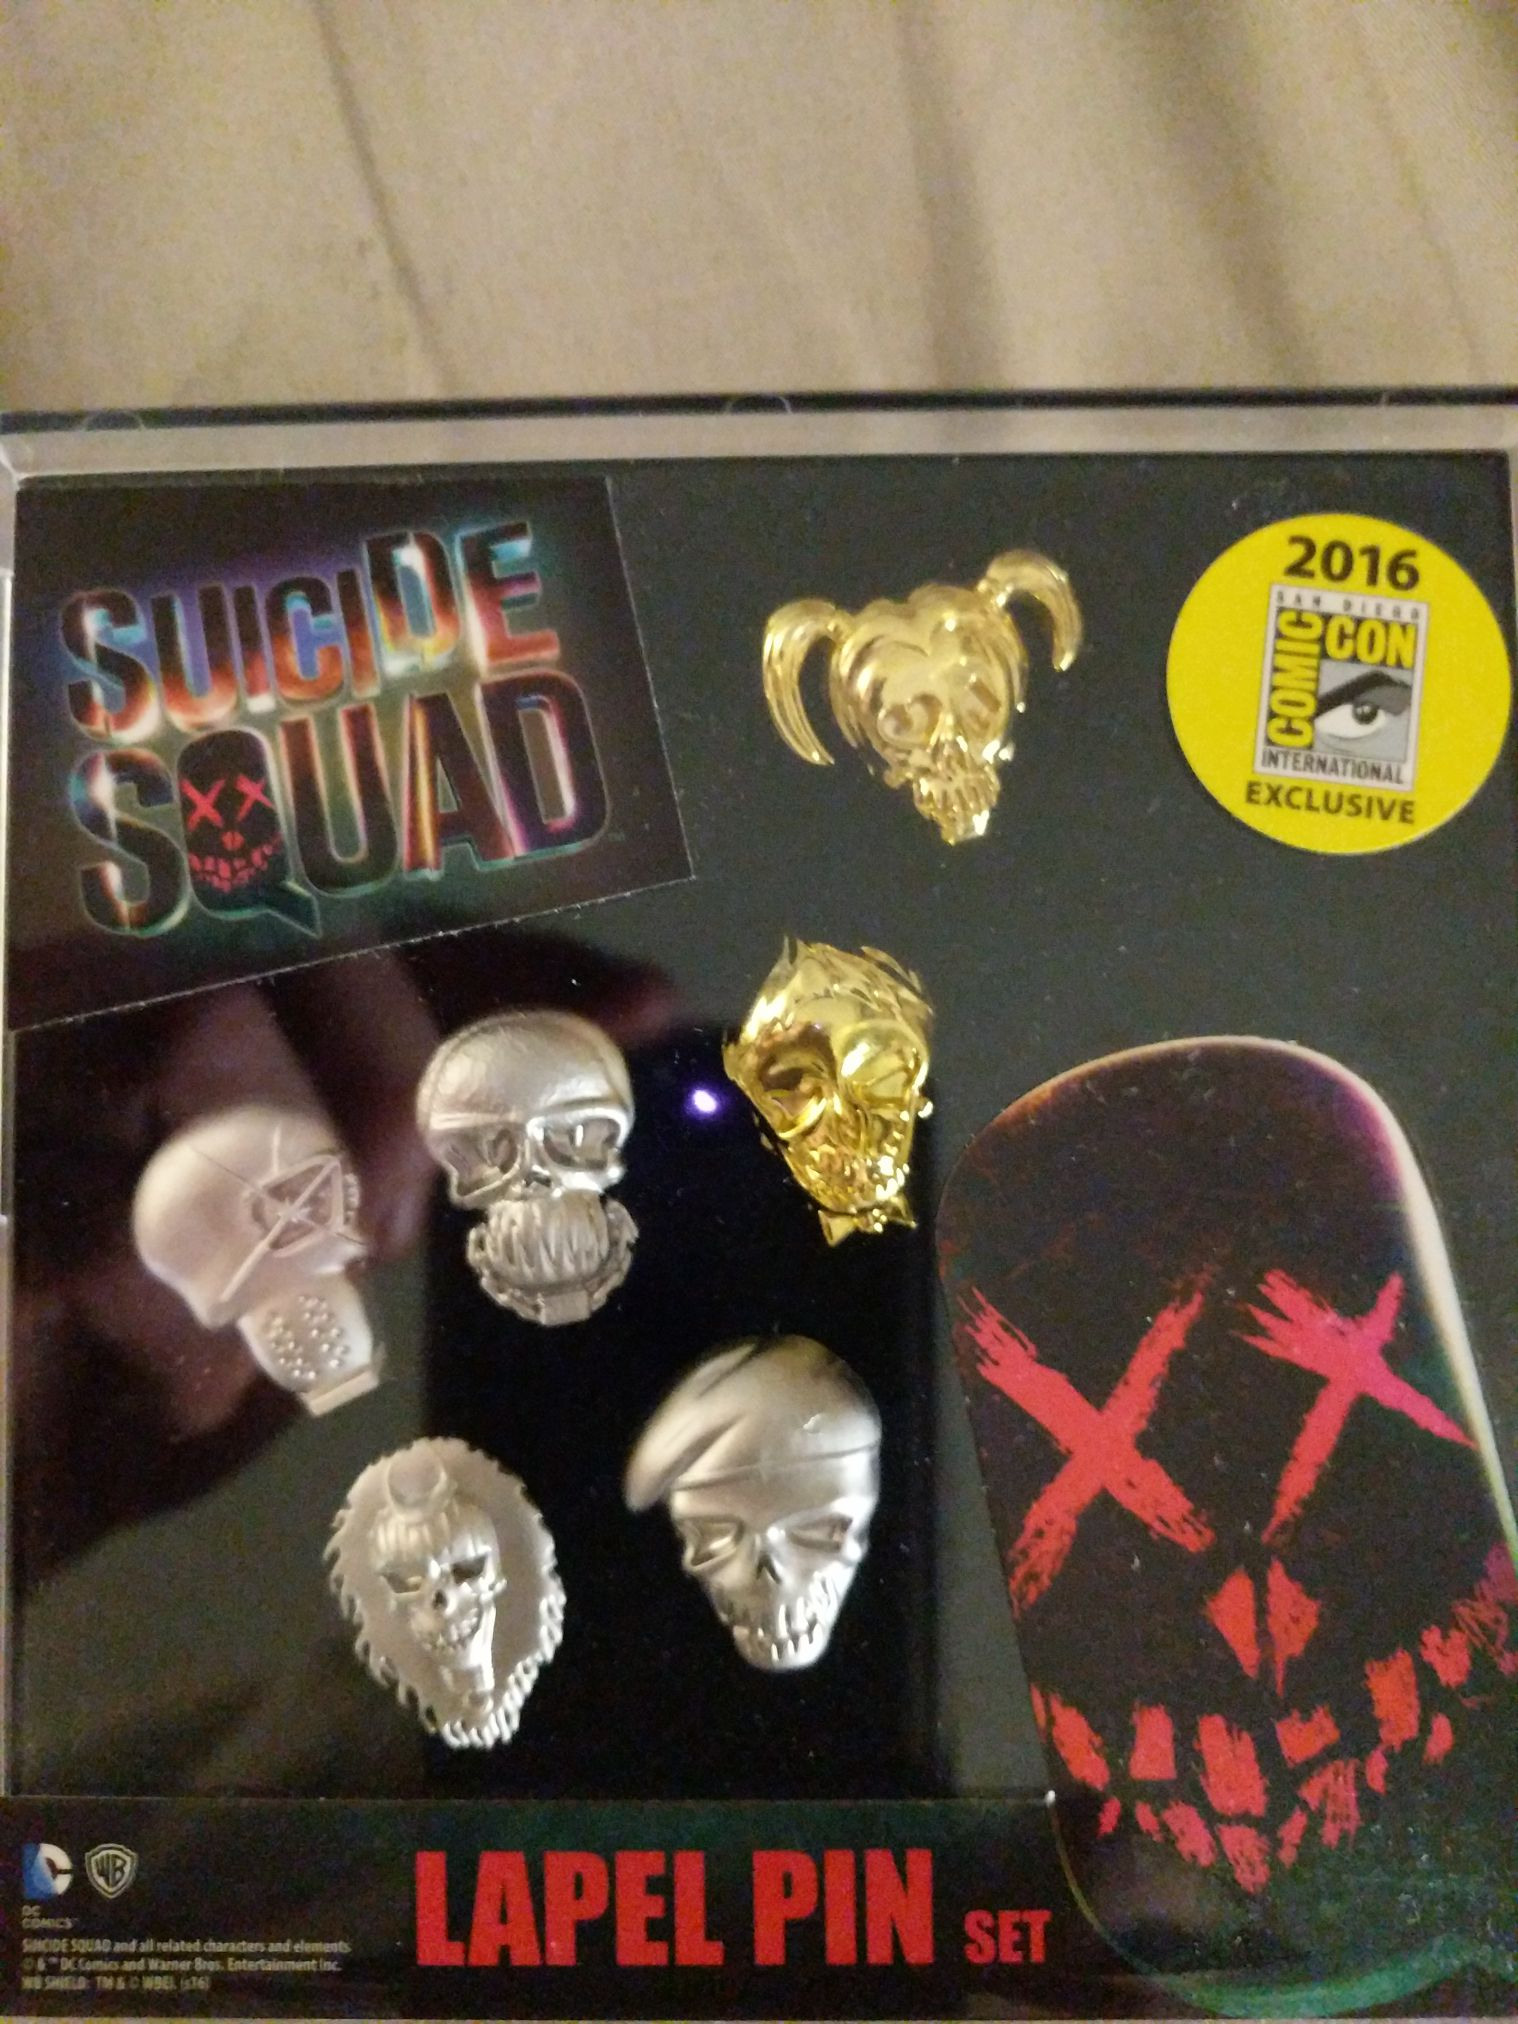 Suicide Squad Lapel Pin Set Disneypin front image (front cover)